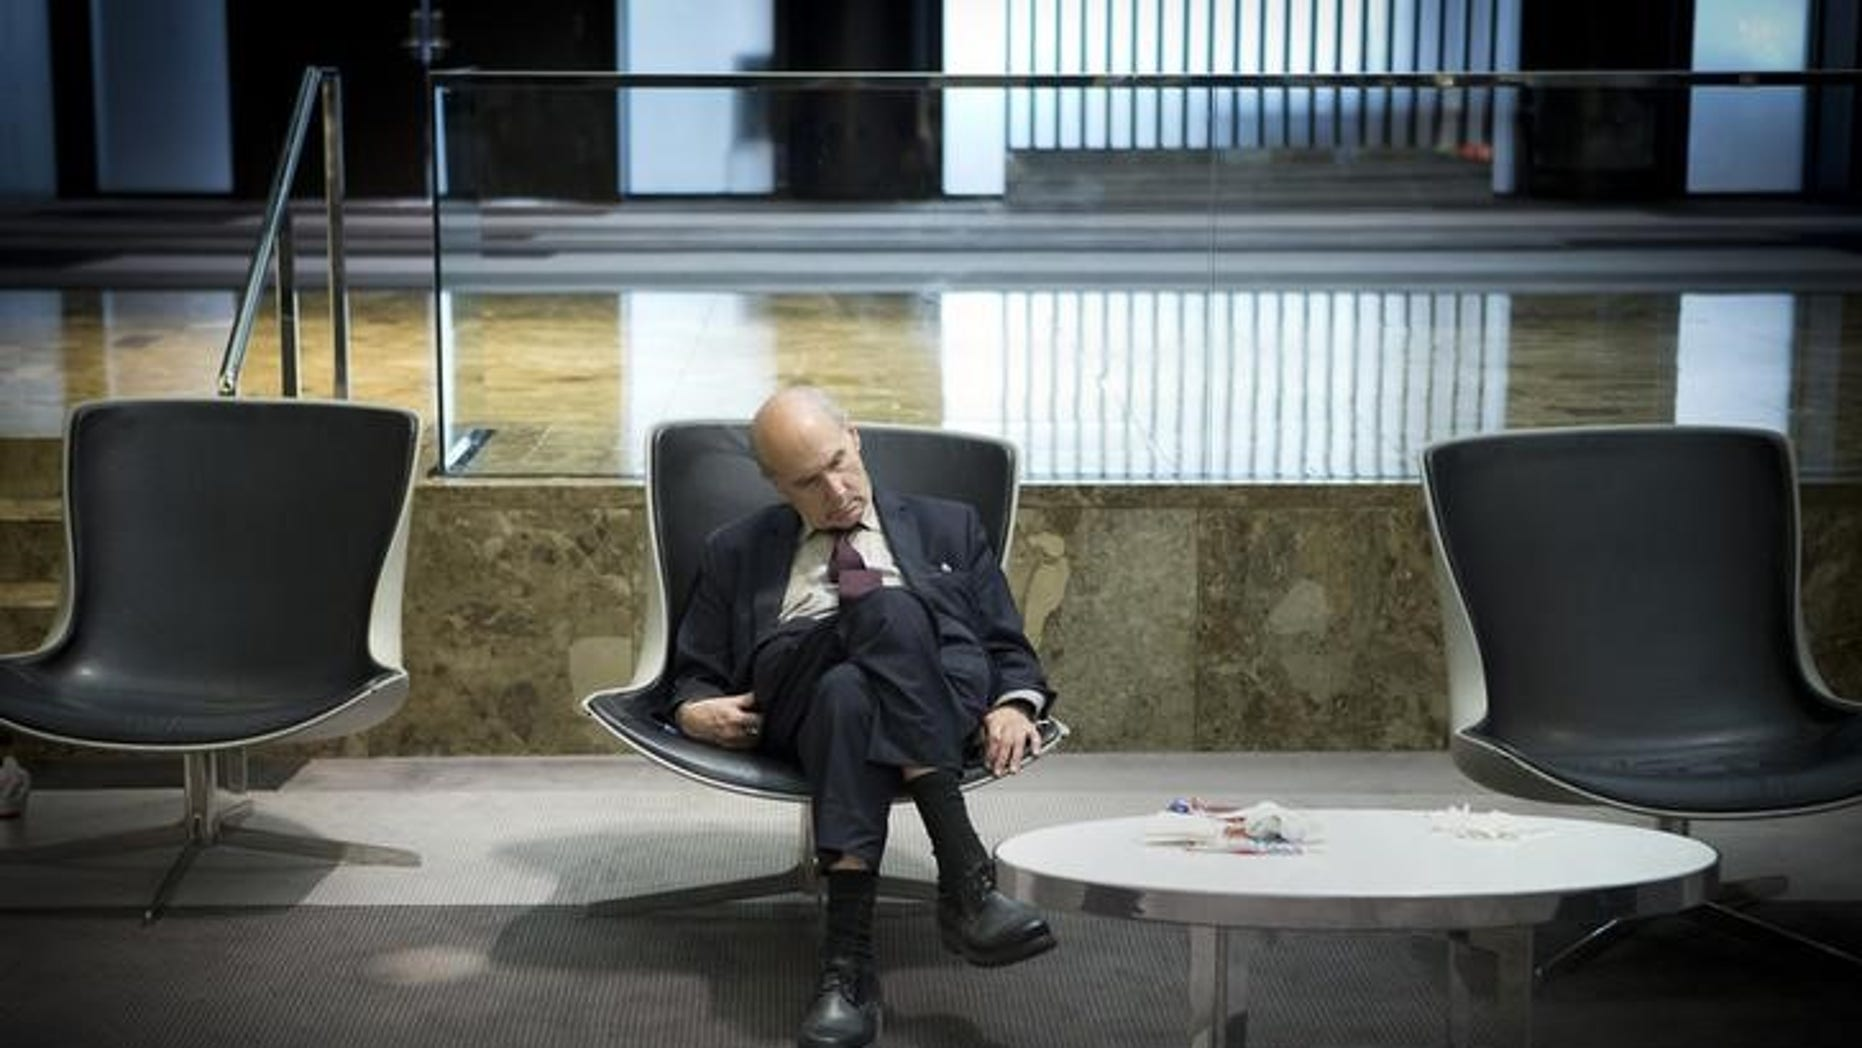 A businessman takes a mid-day nap in the lobby of a midtown hotel in the Manhattan borough of New York August 1, 2014.      REUTERS/Carlo Allegri